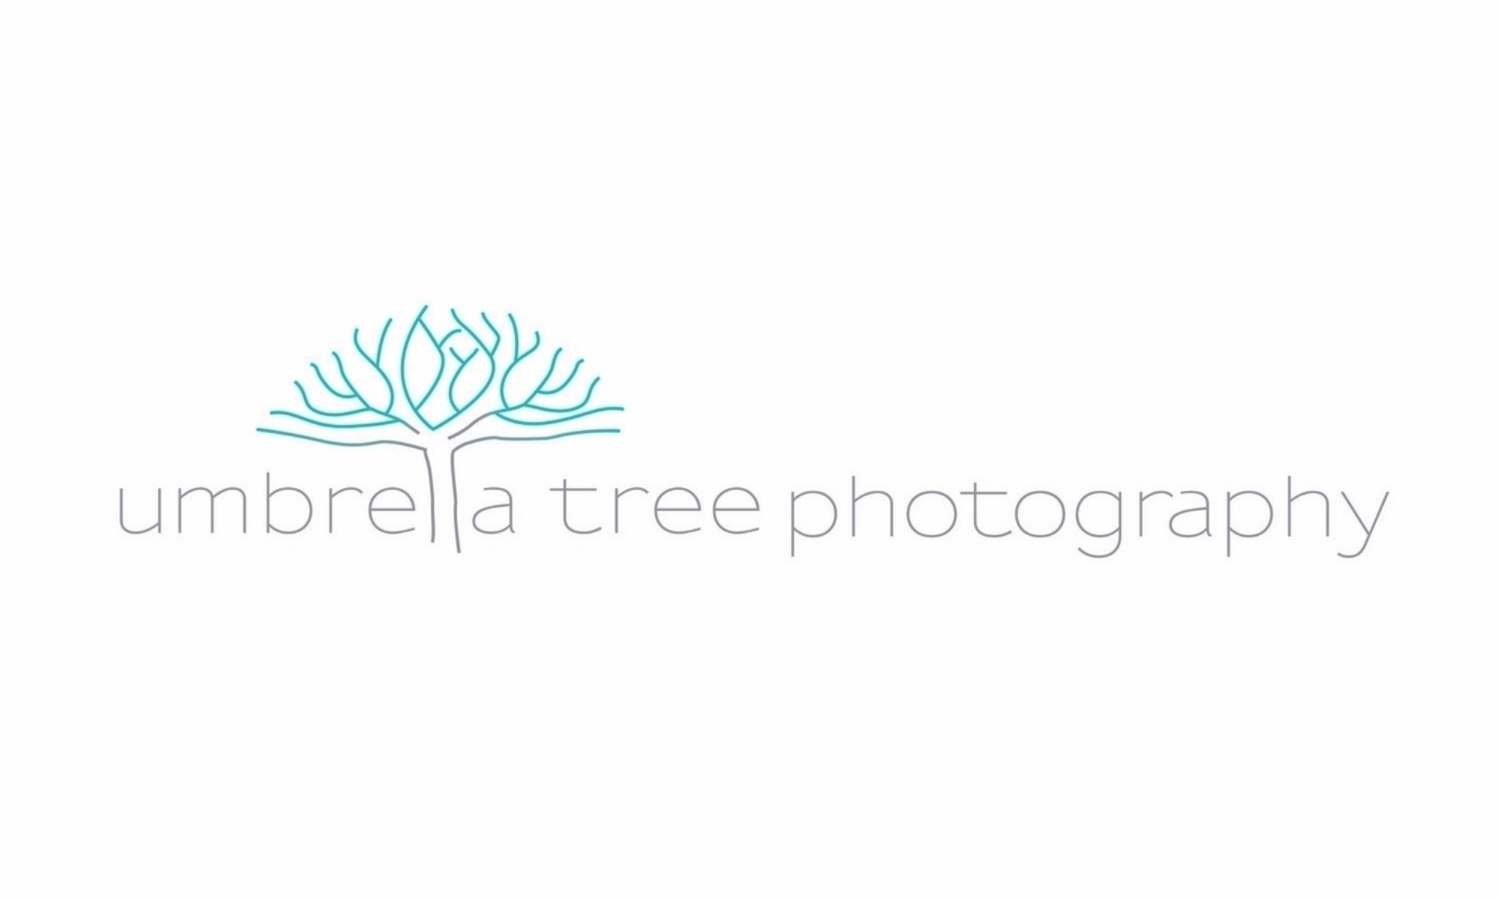 Umbrella Tree Photography